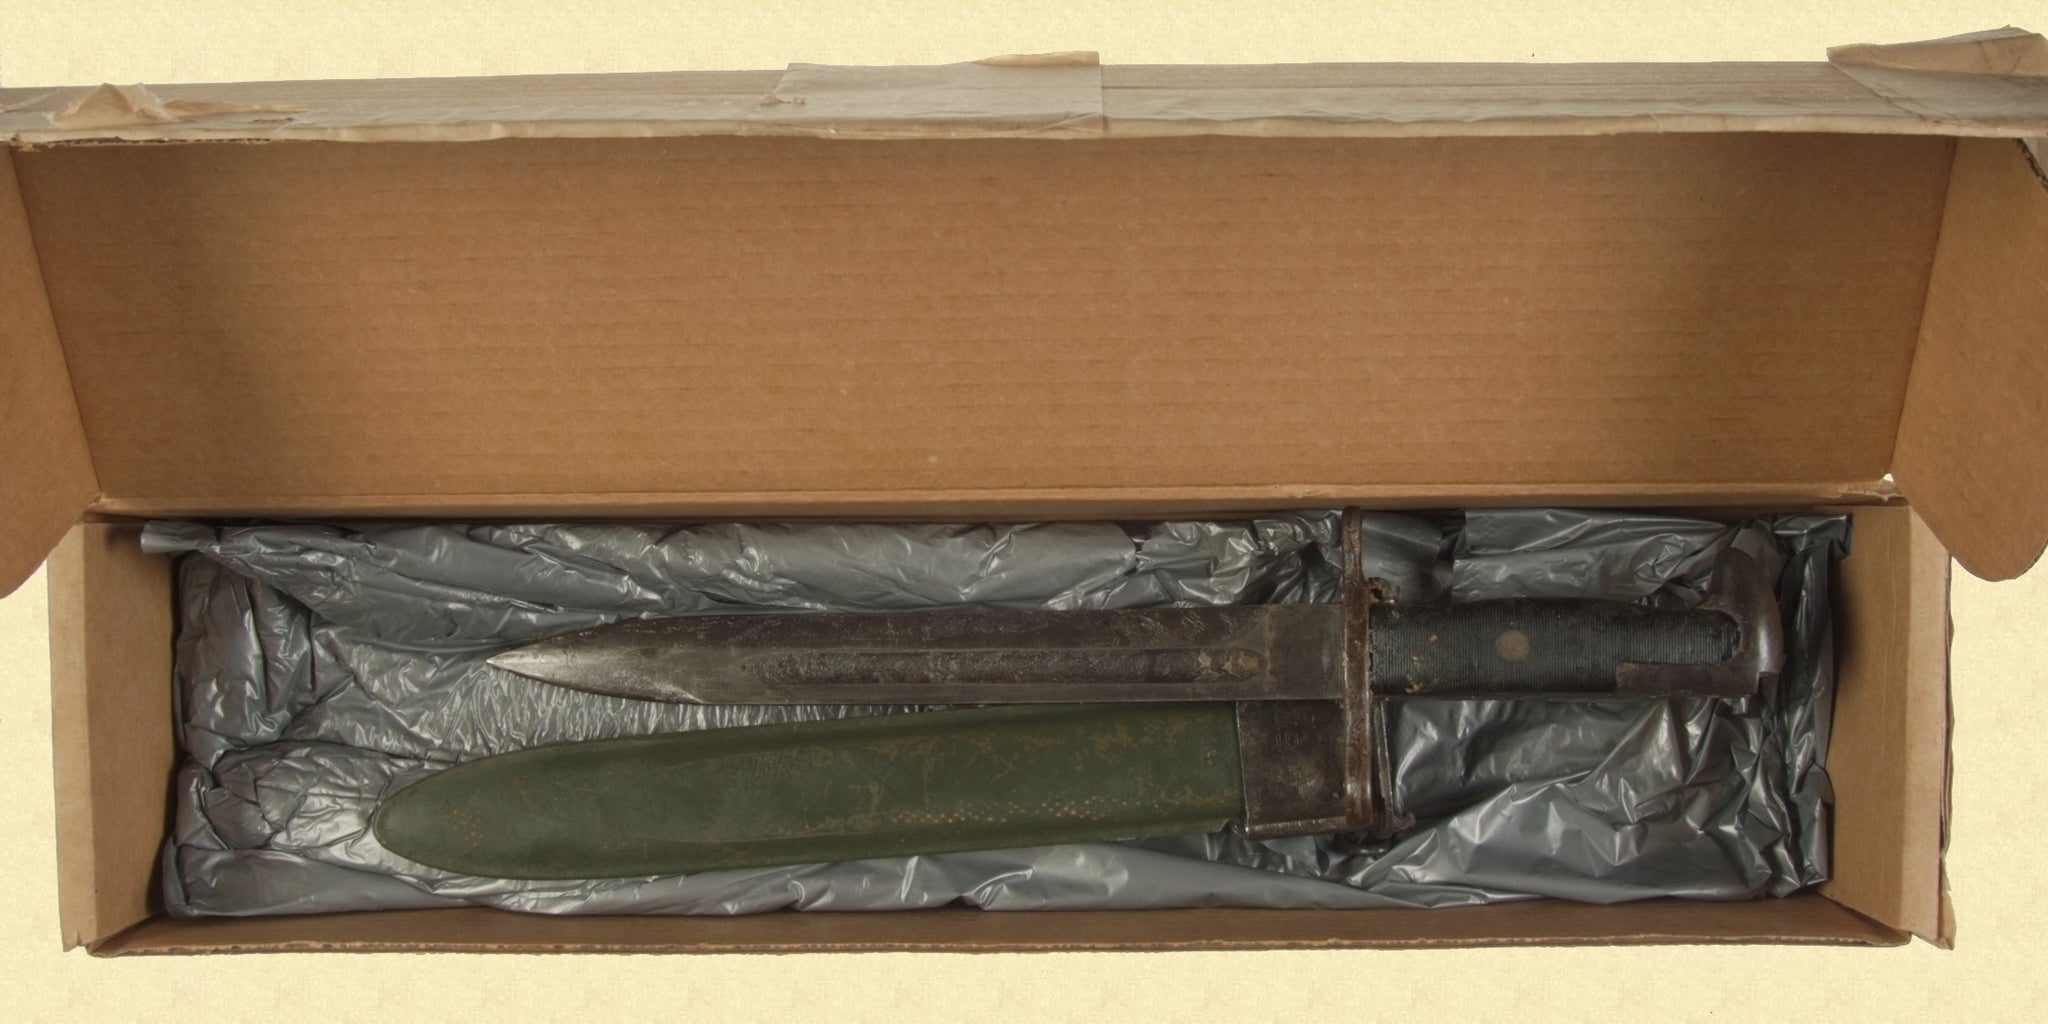 GREEK M1 BAYONET